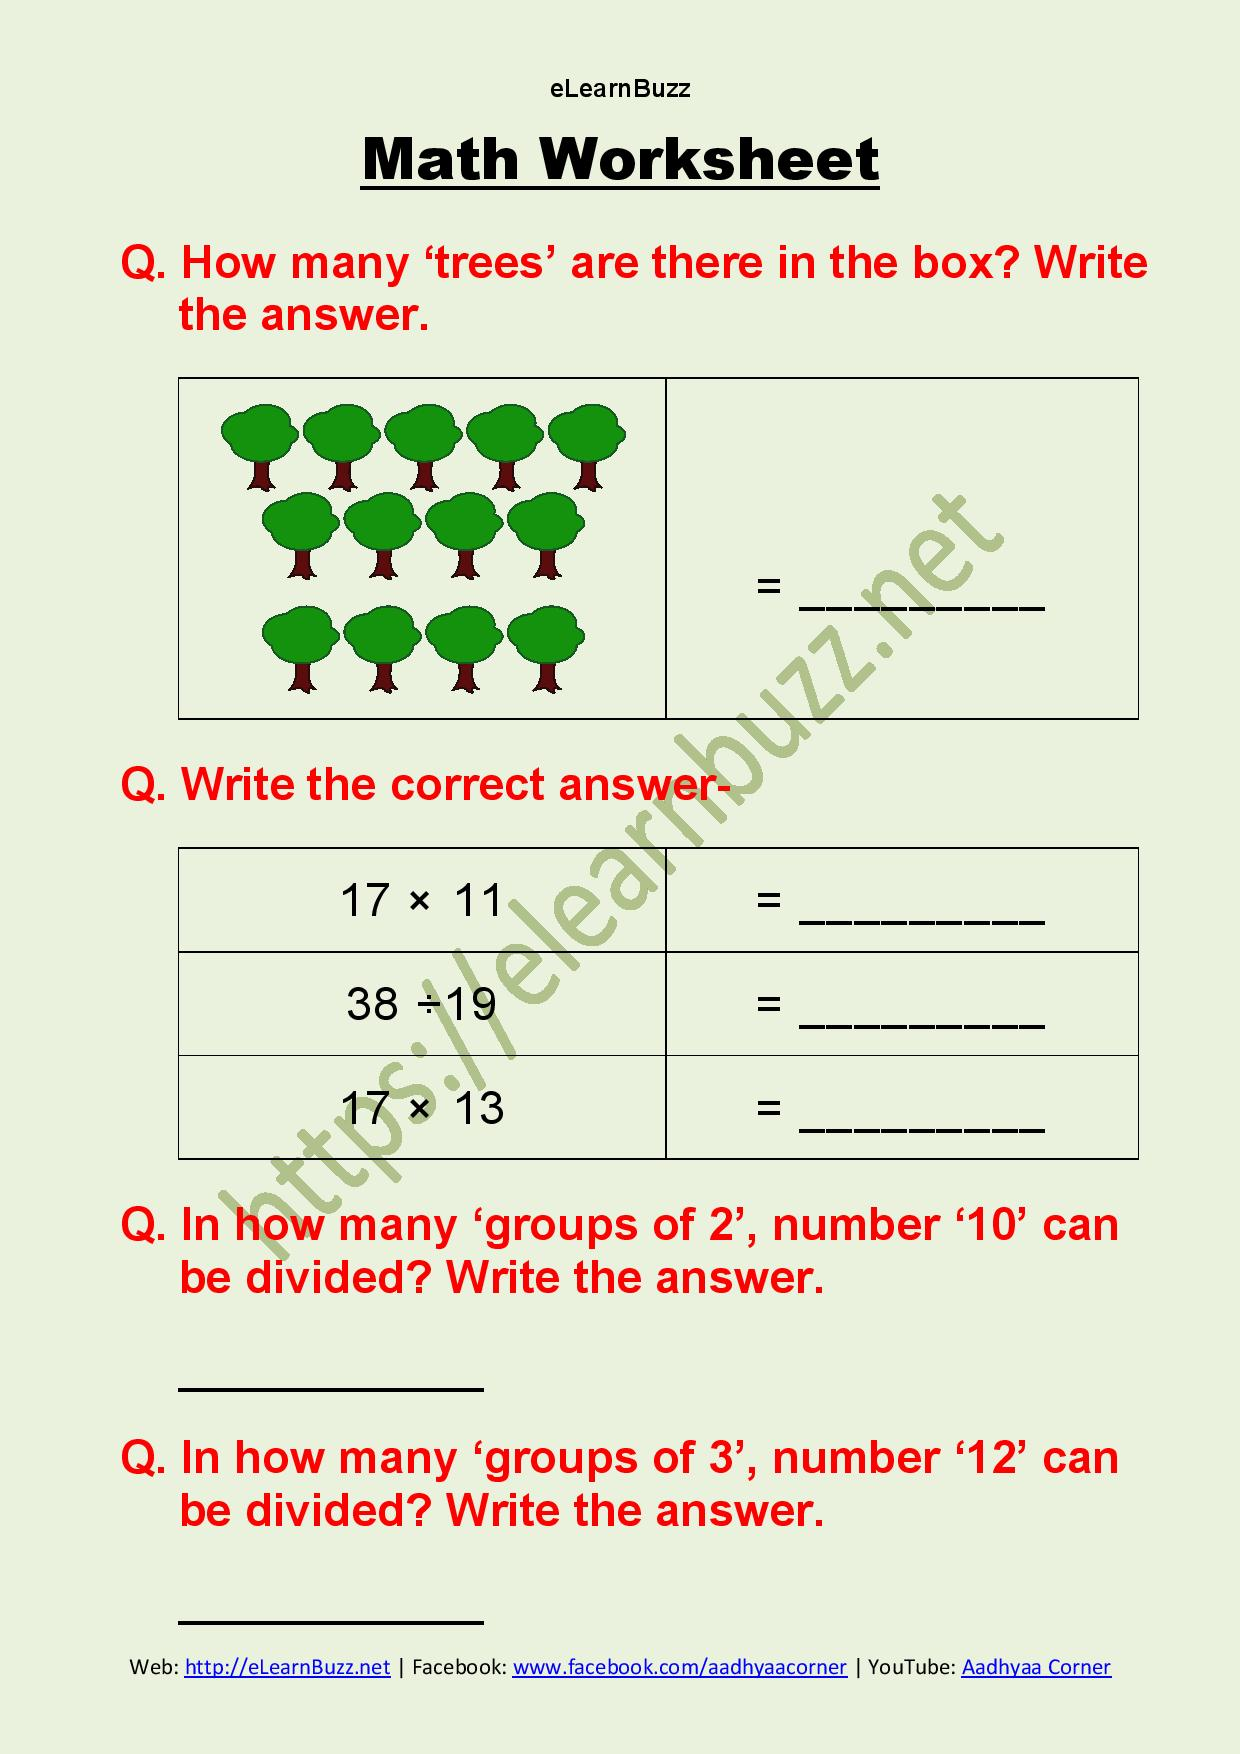 Math Worksheet For Class 2